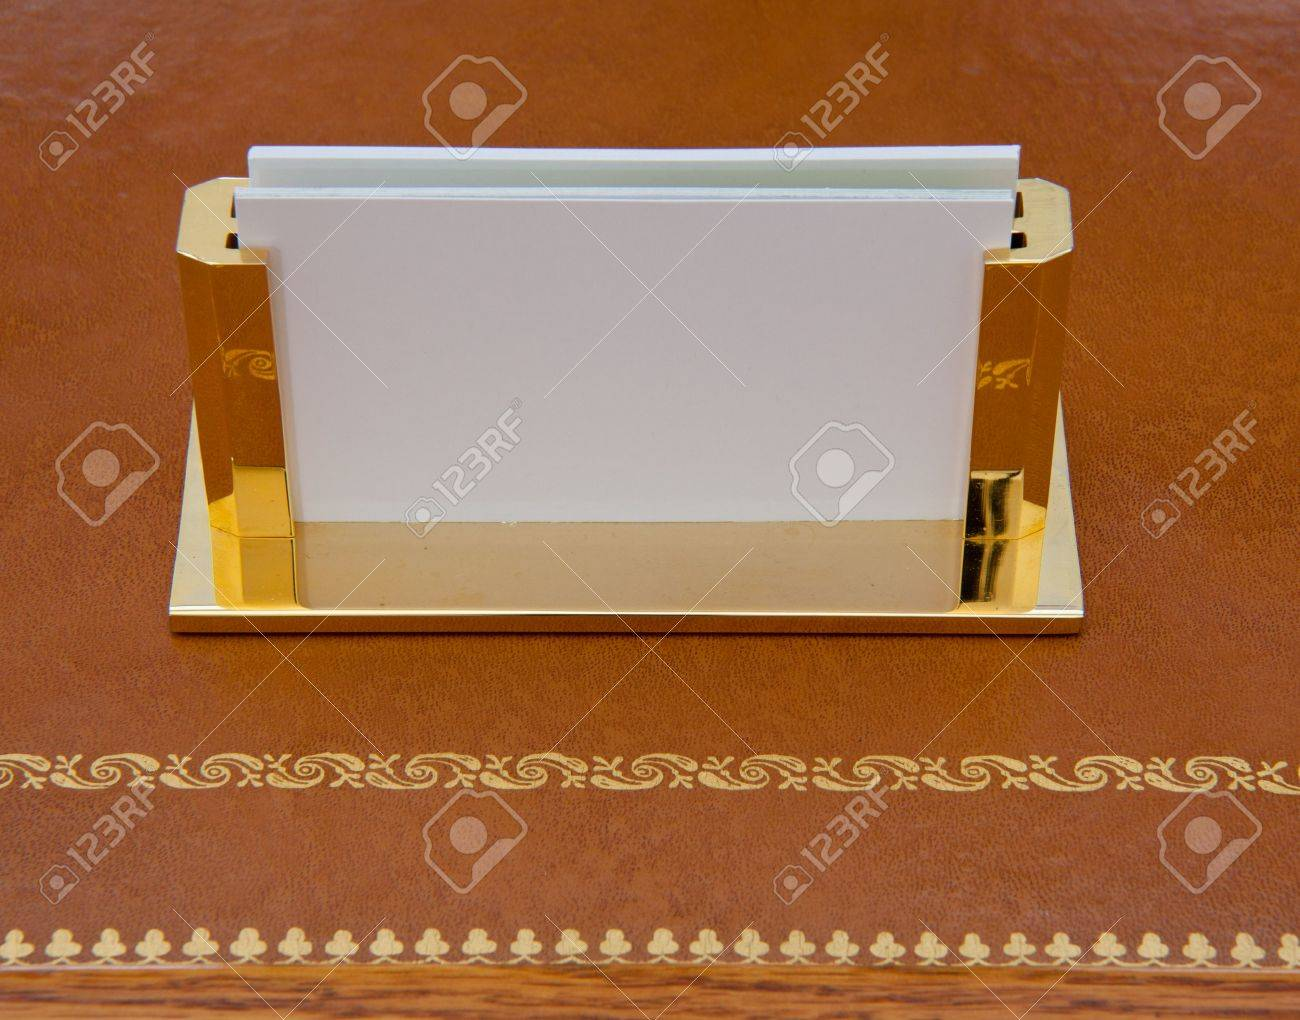 brass business card holder on a leather desk with gold edging stock photo - Business Card Holder Desk